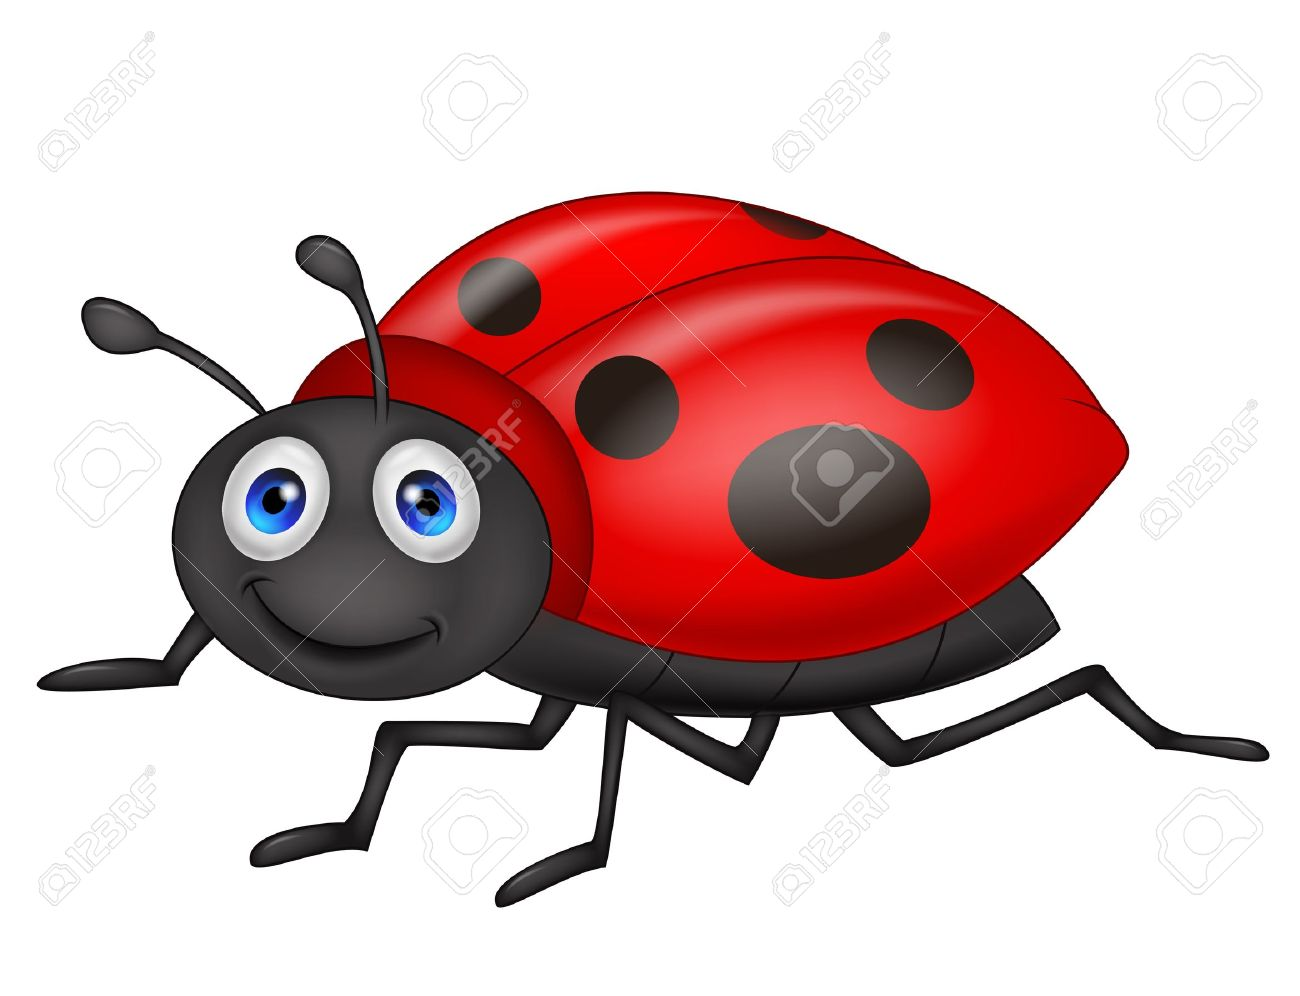 cute ladybug cartoon royalty free cliparts vectors and stock